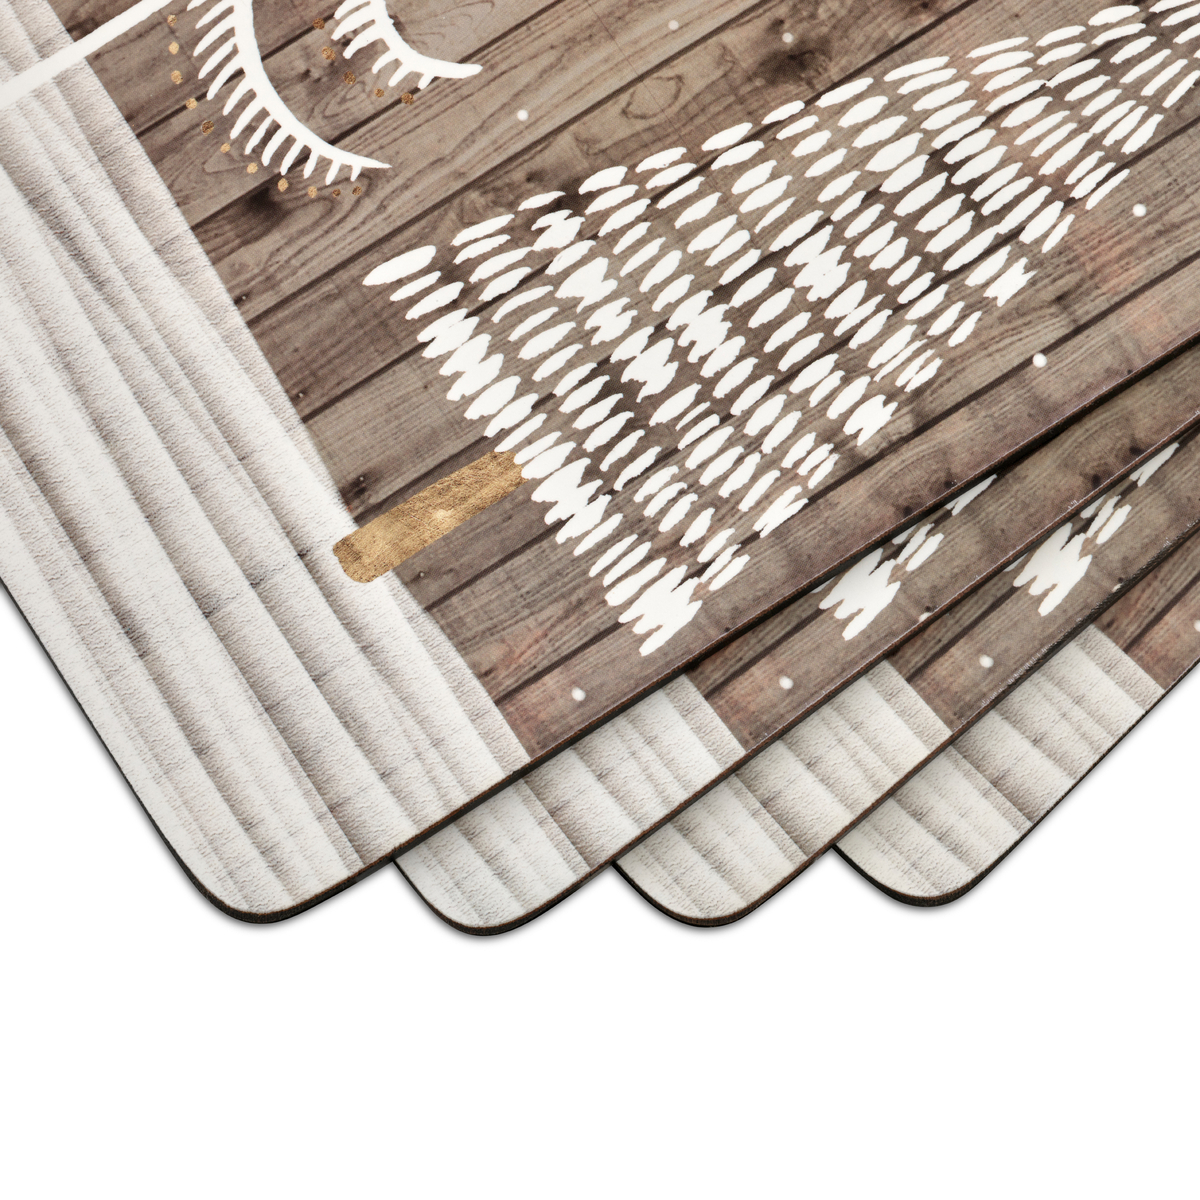 Pimpernel Wooden White Christmas Placemats Set of 4 image number 2